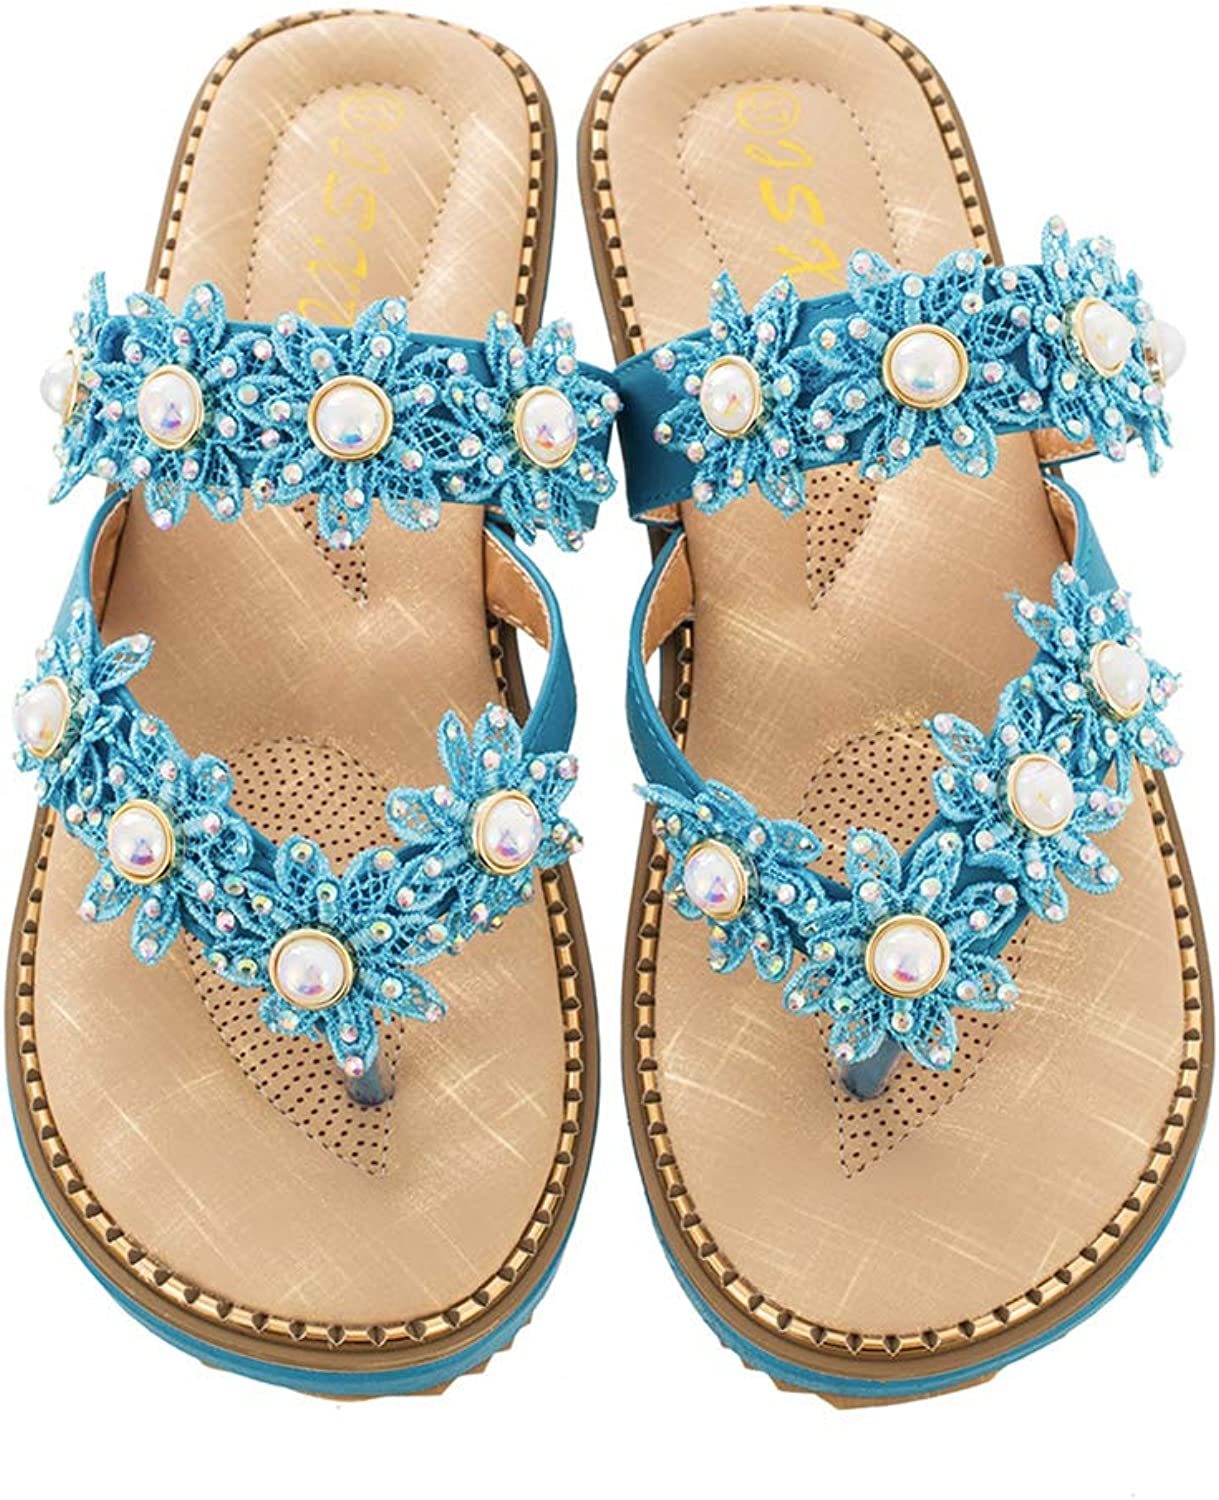 Baviue Women's Jeweled Pearls Leather Beach Thong Sandals Flip Flops